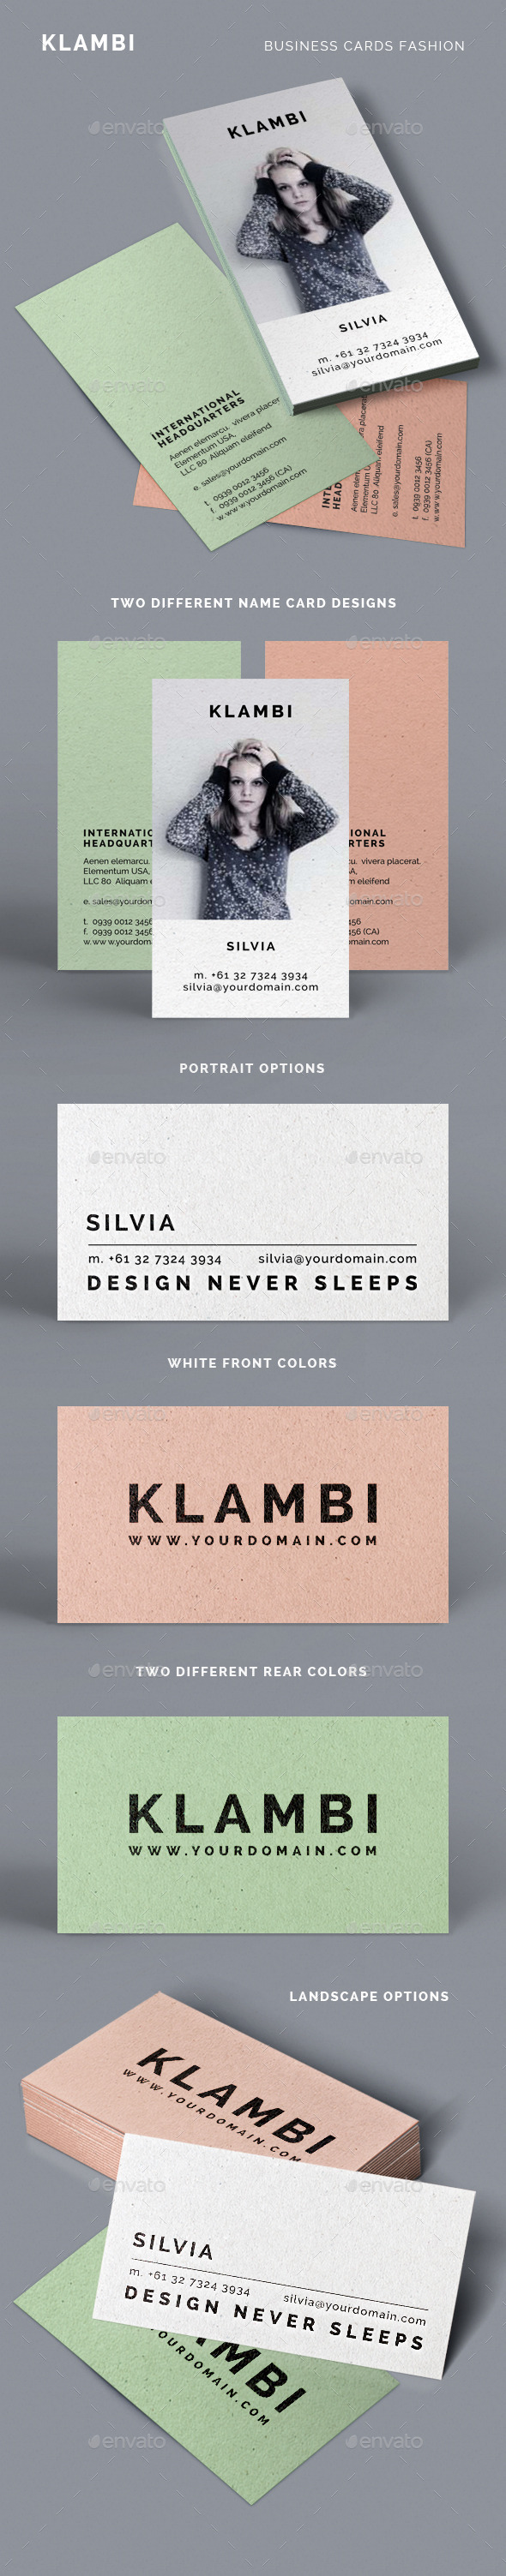 Fashion Business Cards Klambi - Industry Specific Business Cards